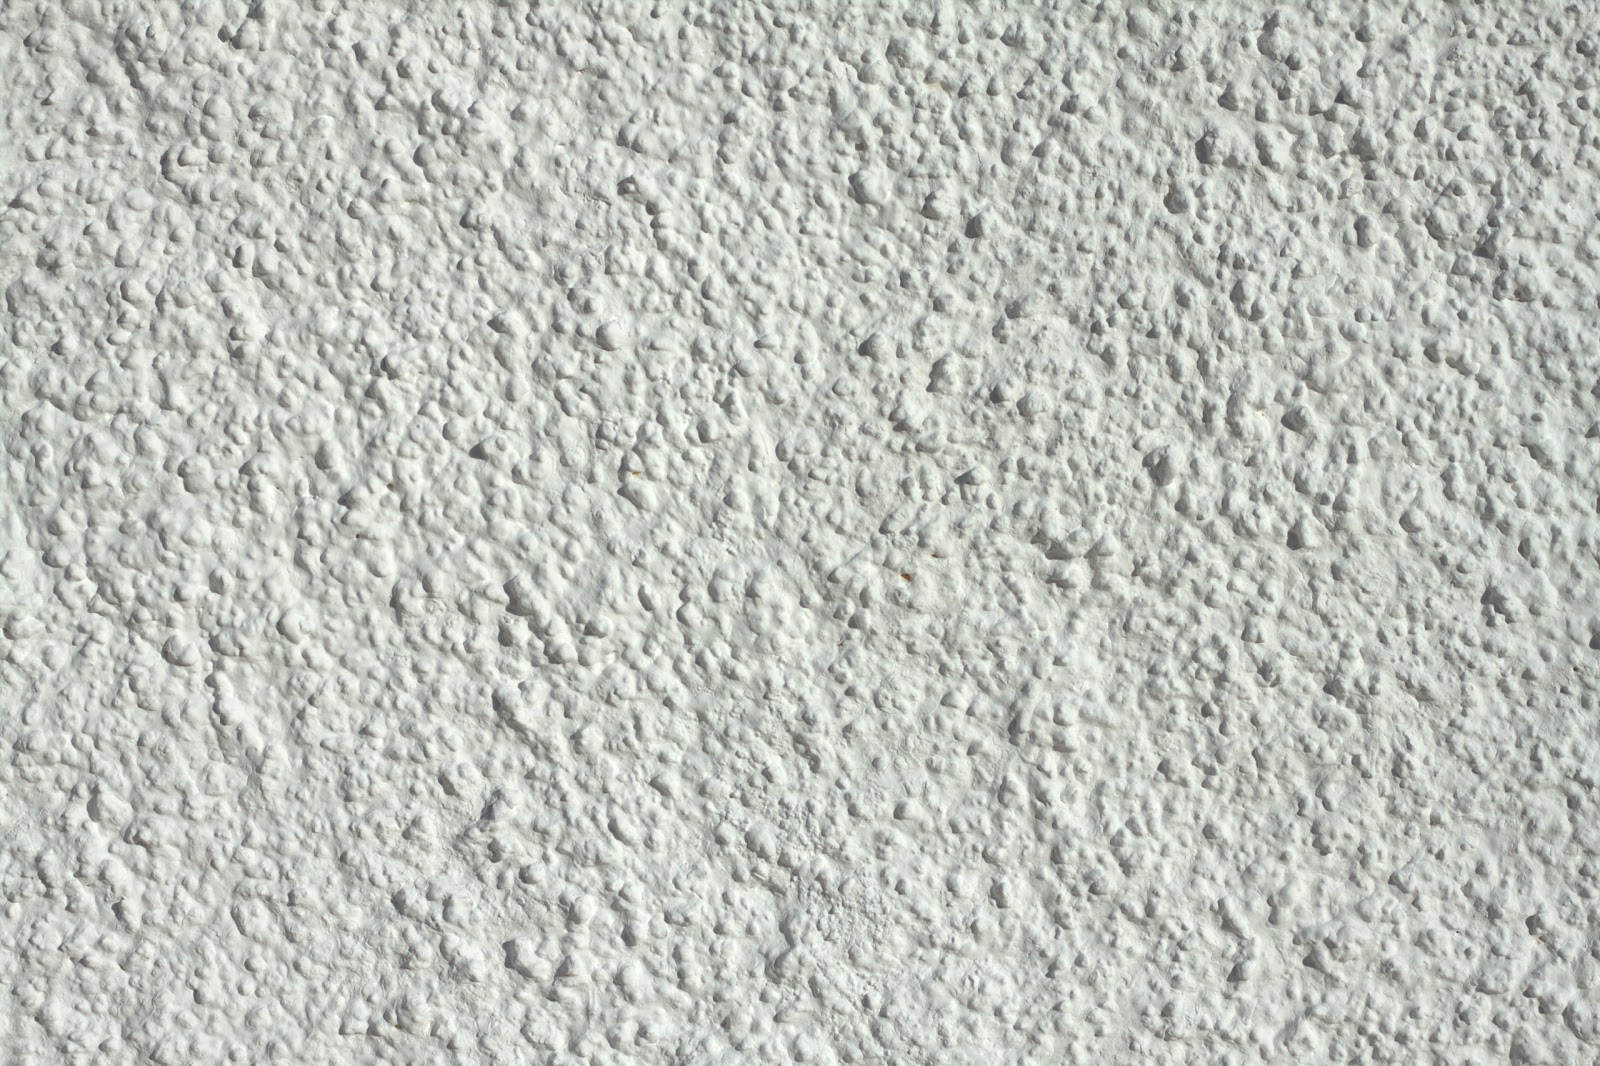 Stucco white wall plaster detailed texture 4770x3178